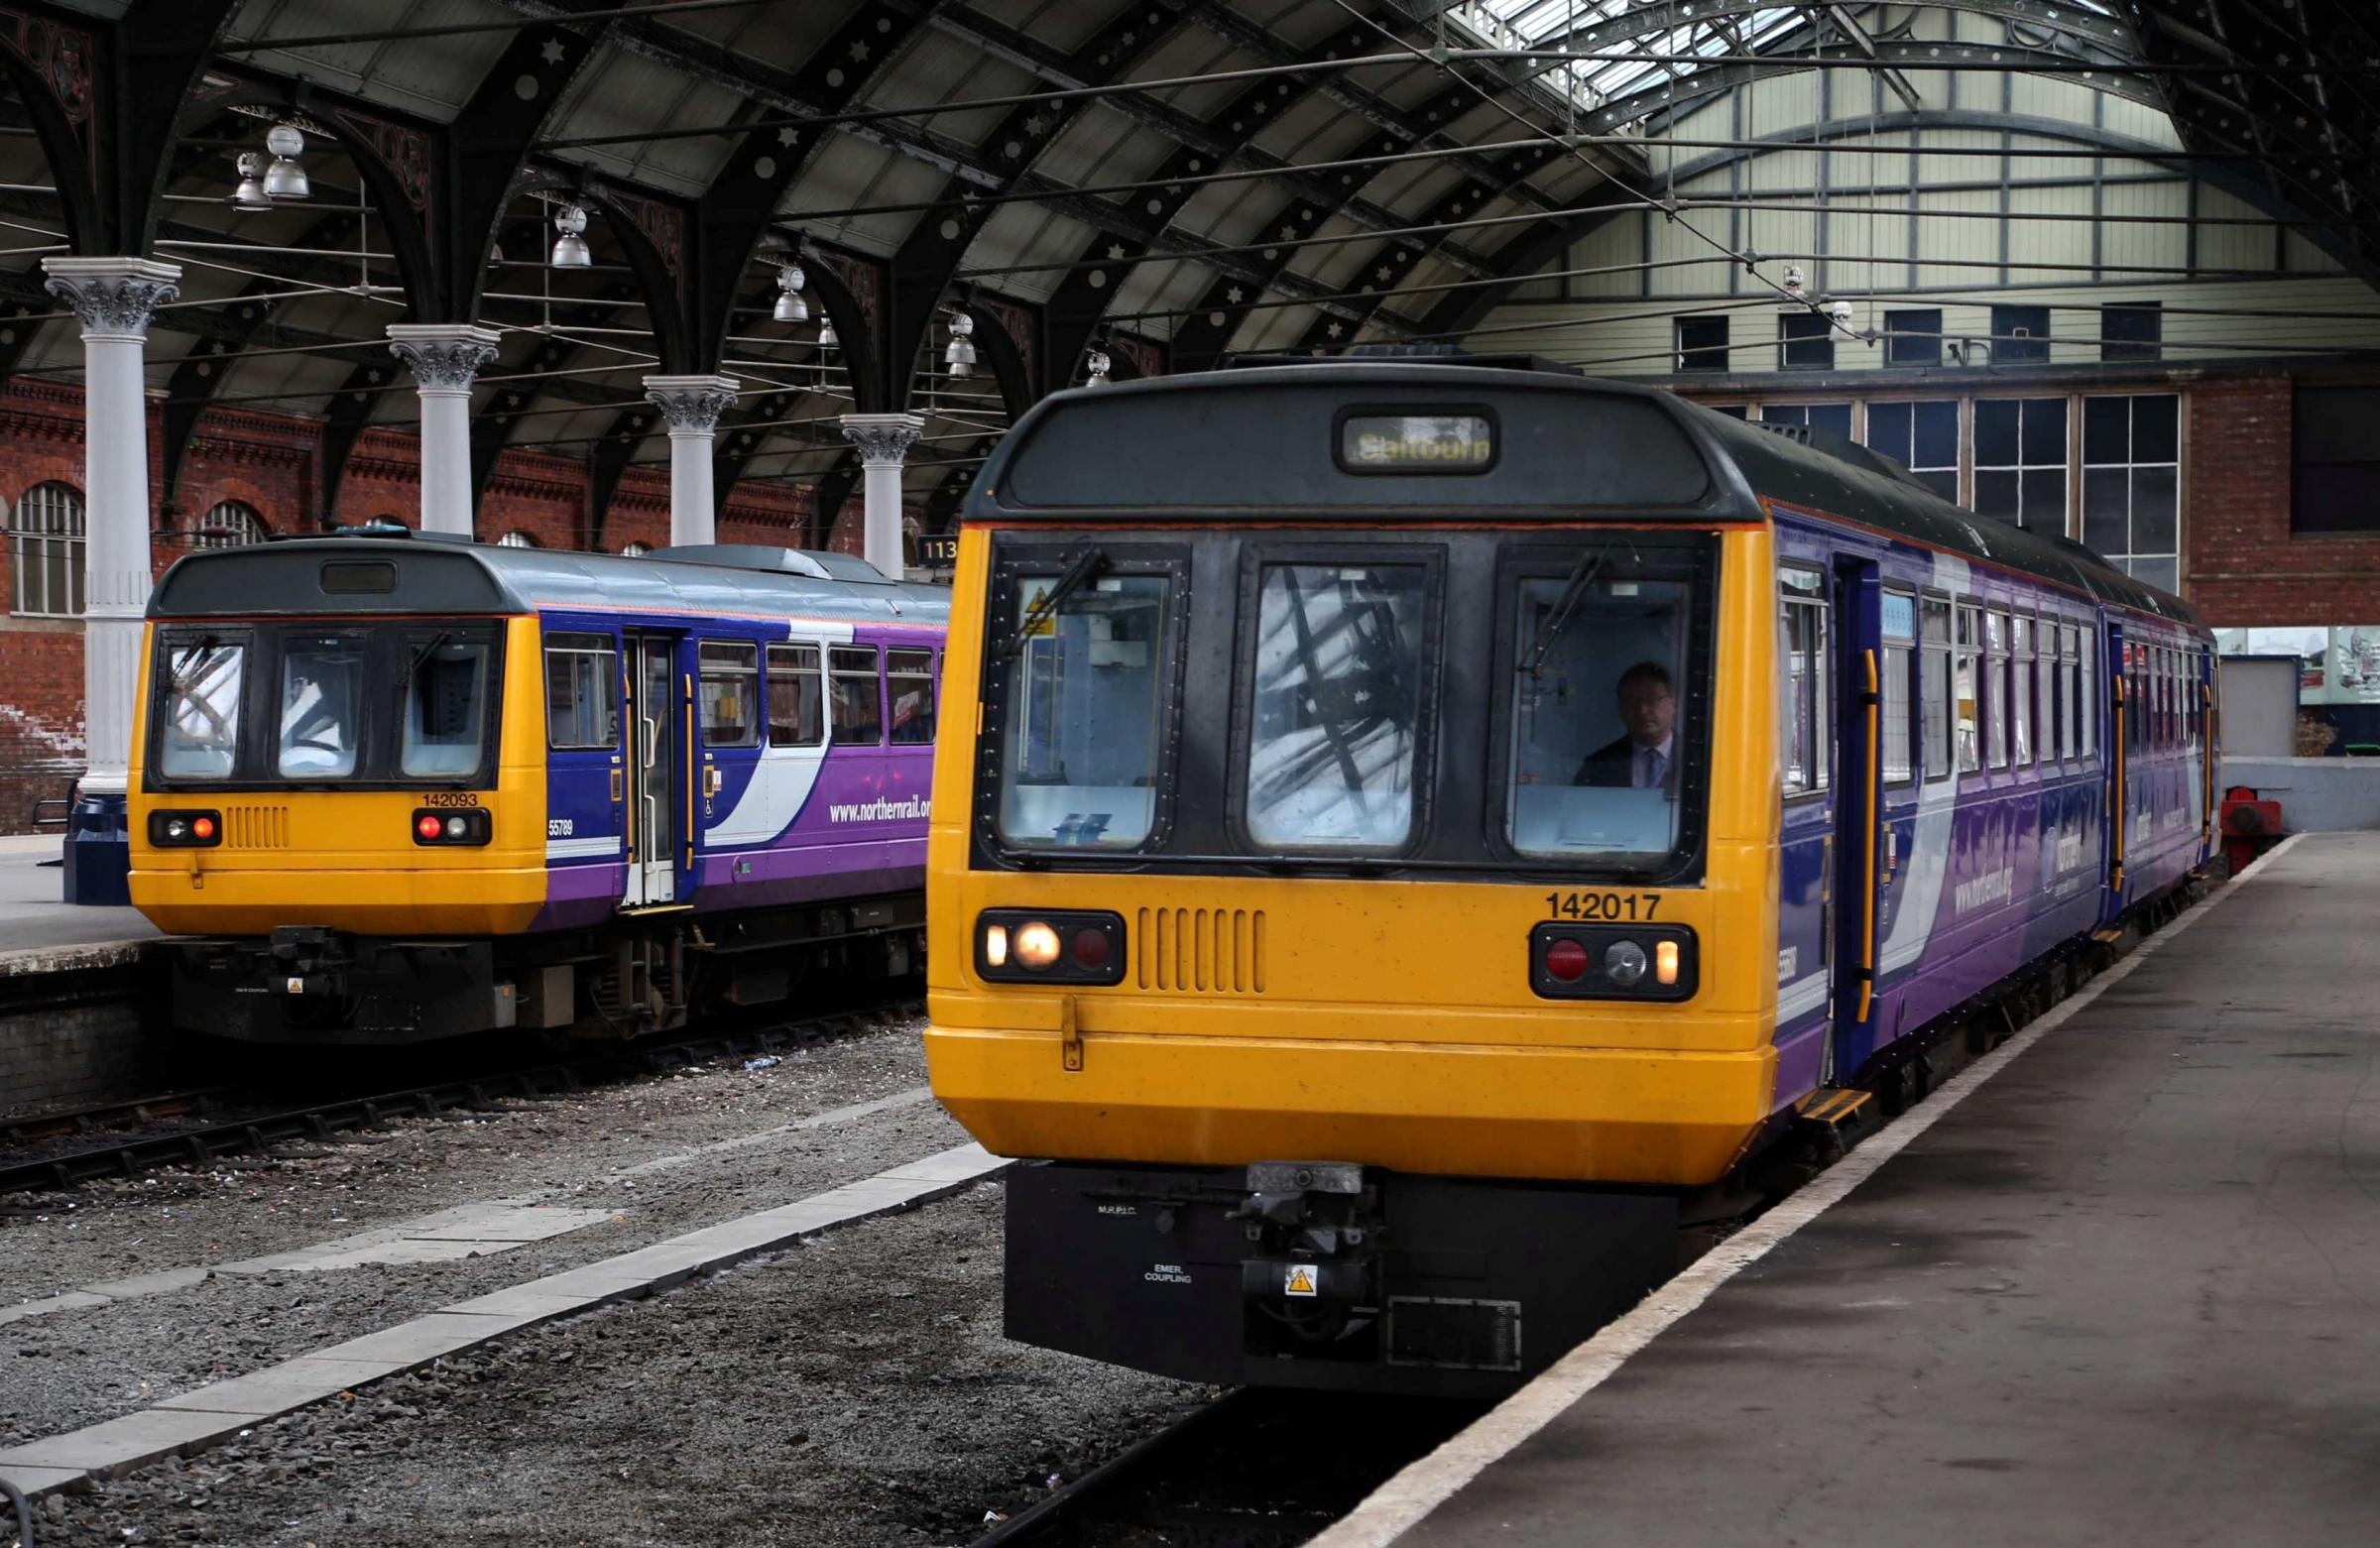 Rail services have been disrupted by trespassers between Durham and Newcastle